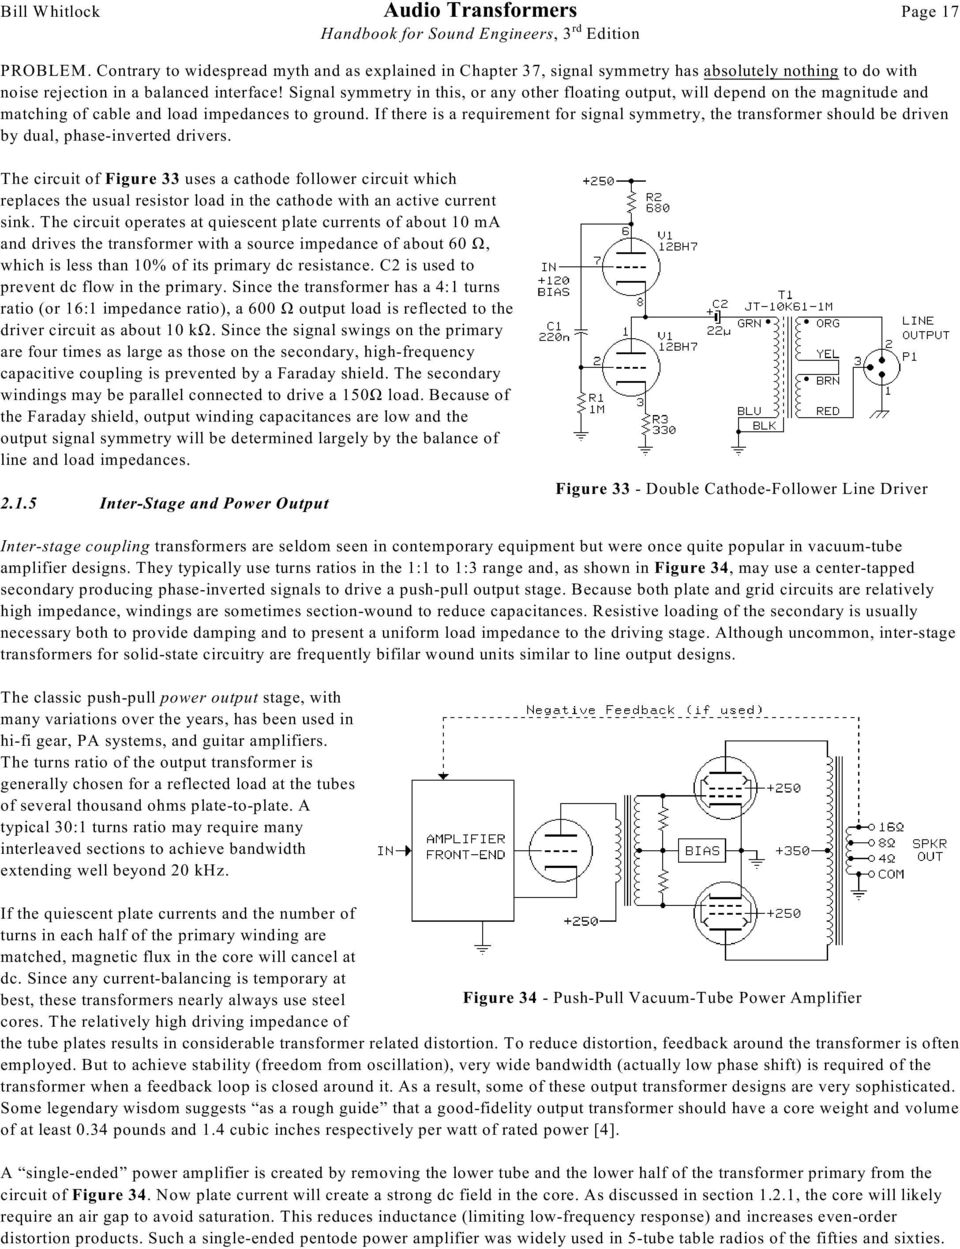 Audio Transformers By Bill Whitlock Jensen Inc Fig 2nd Simple Telephone Hybrid Circuit If There Is A Requirement For Signal Symmetry The Transformer Should Be Driven Dual